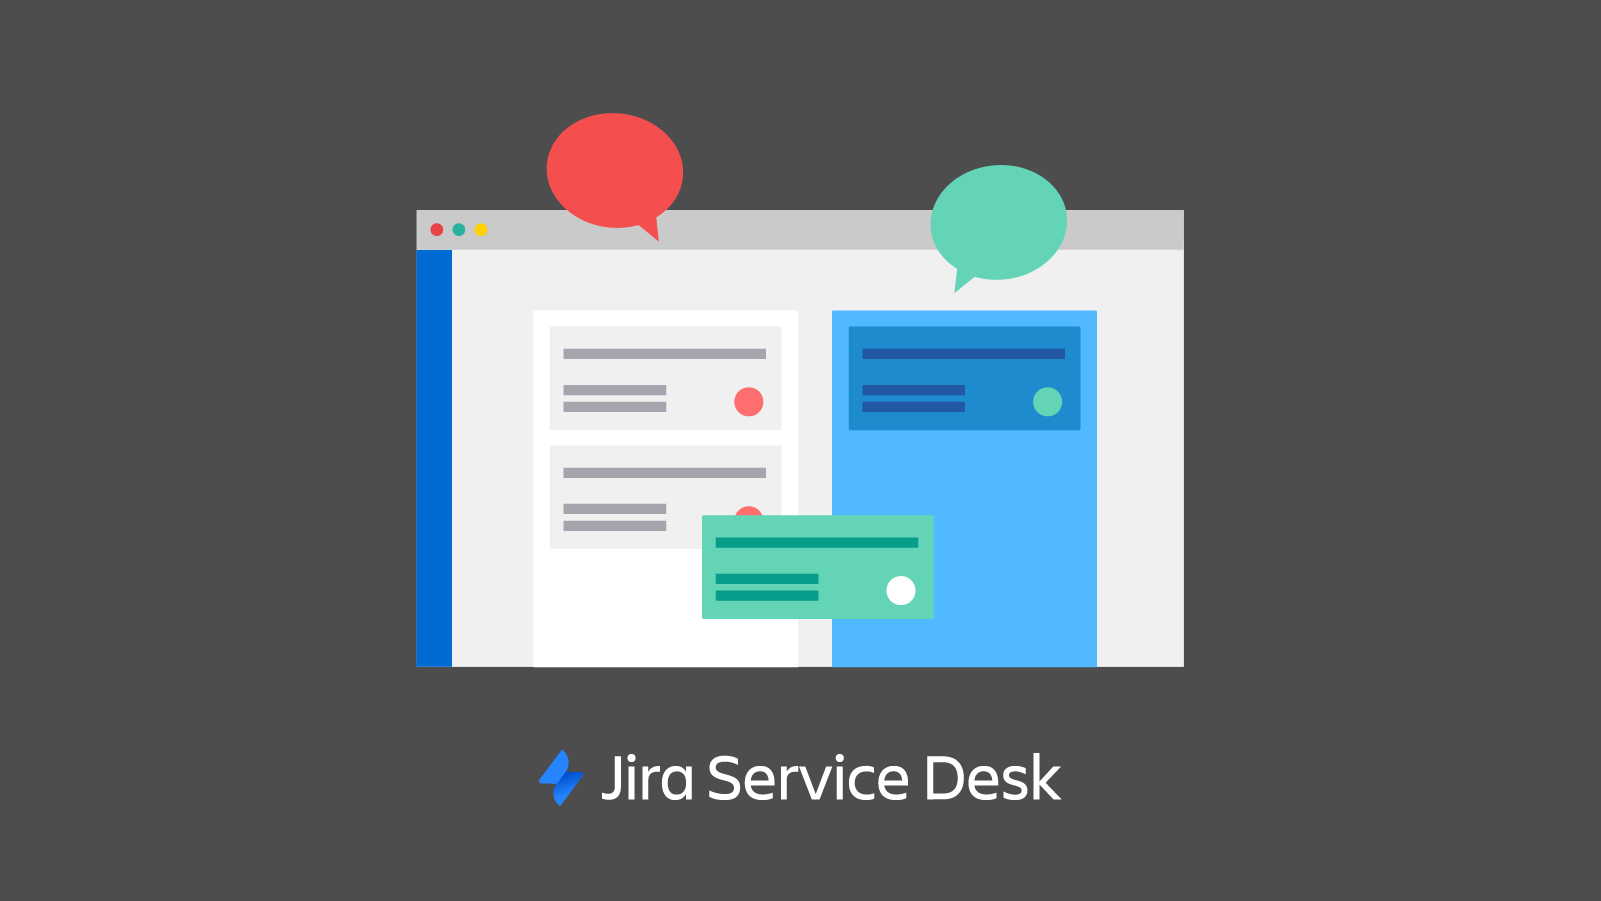 Different versions of the Jira tool and their features at a glance